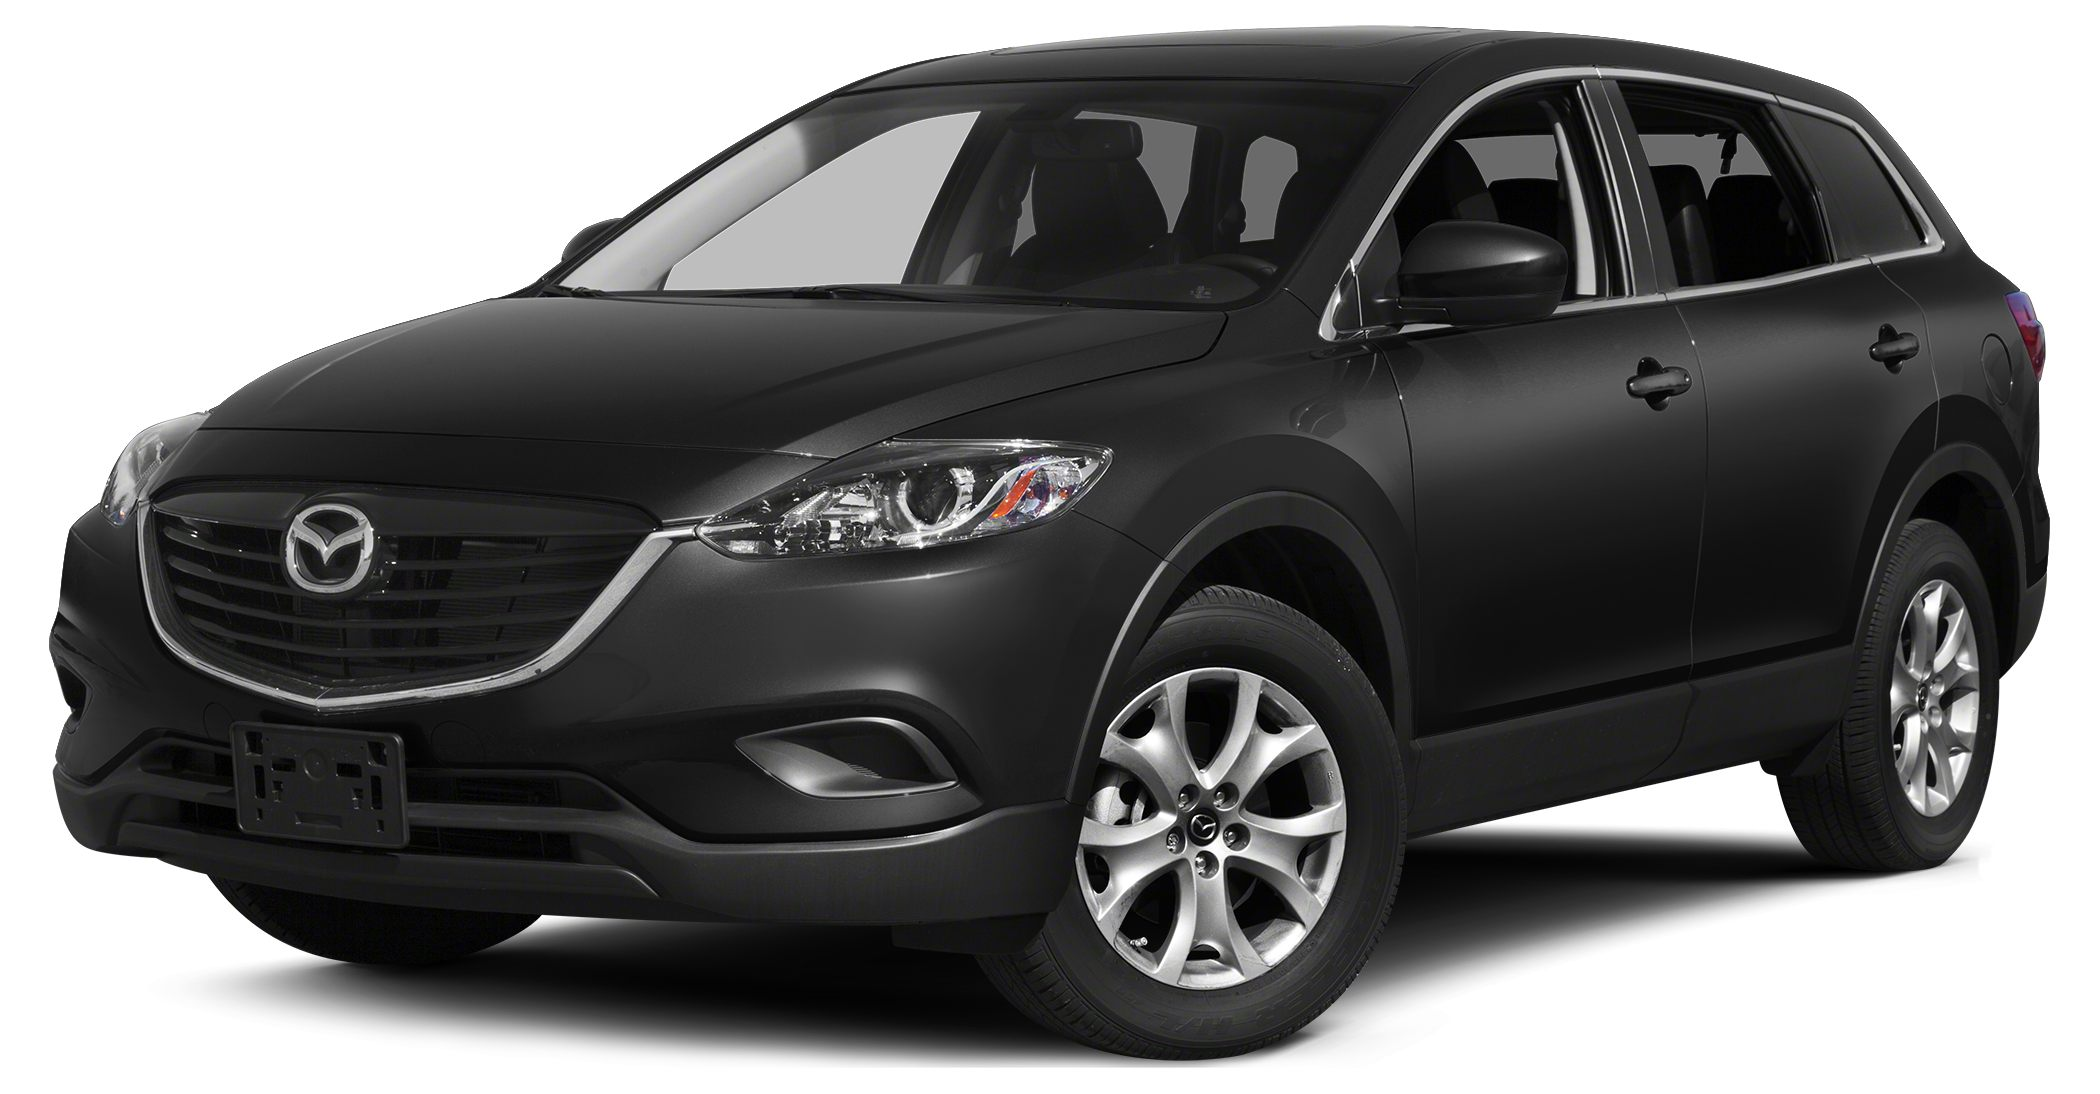 2013 Mazda CX-9 Grand Touring WE SELL OUR VEHICLES AT WHOLESALE PRICES AND STAND BEHIND OUR CARS